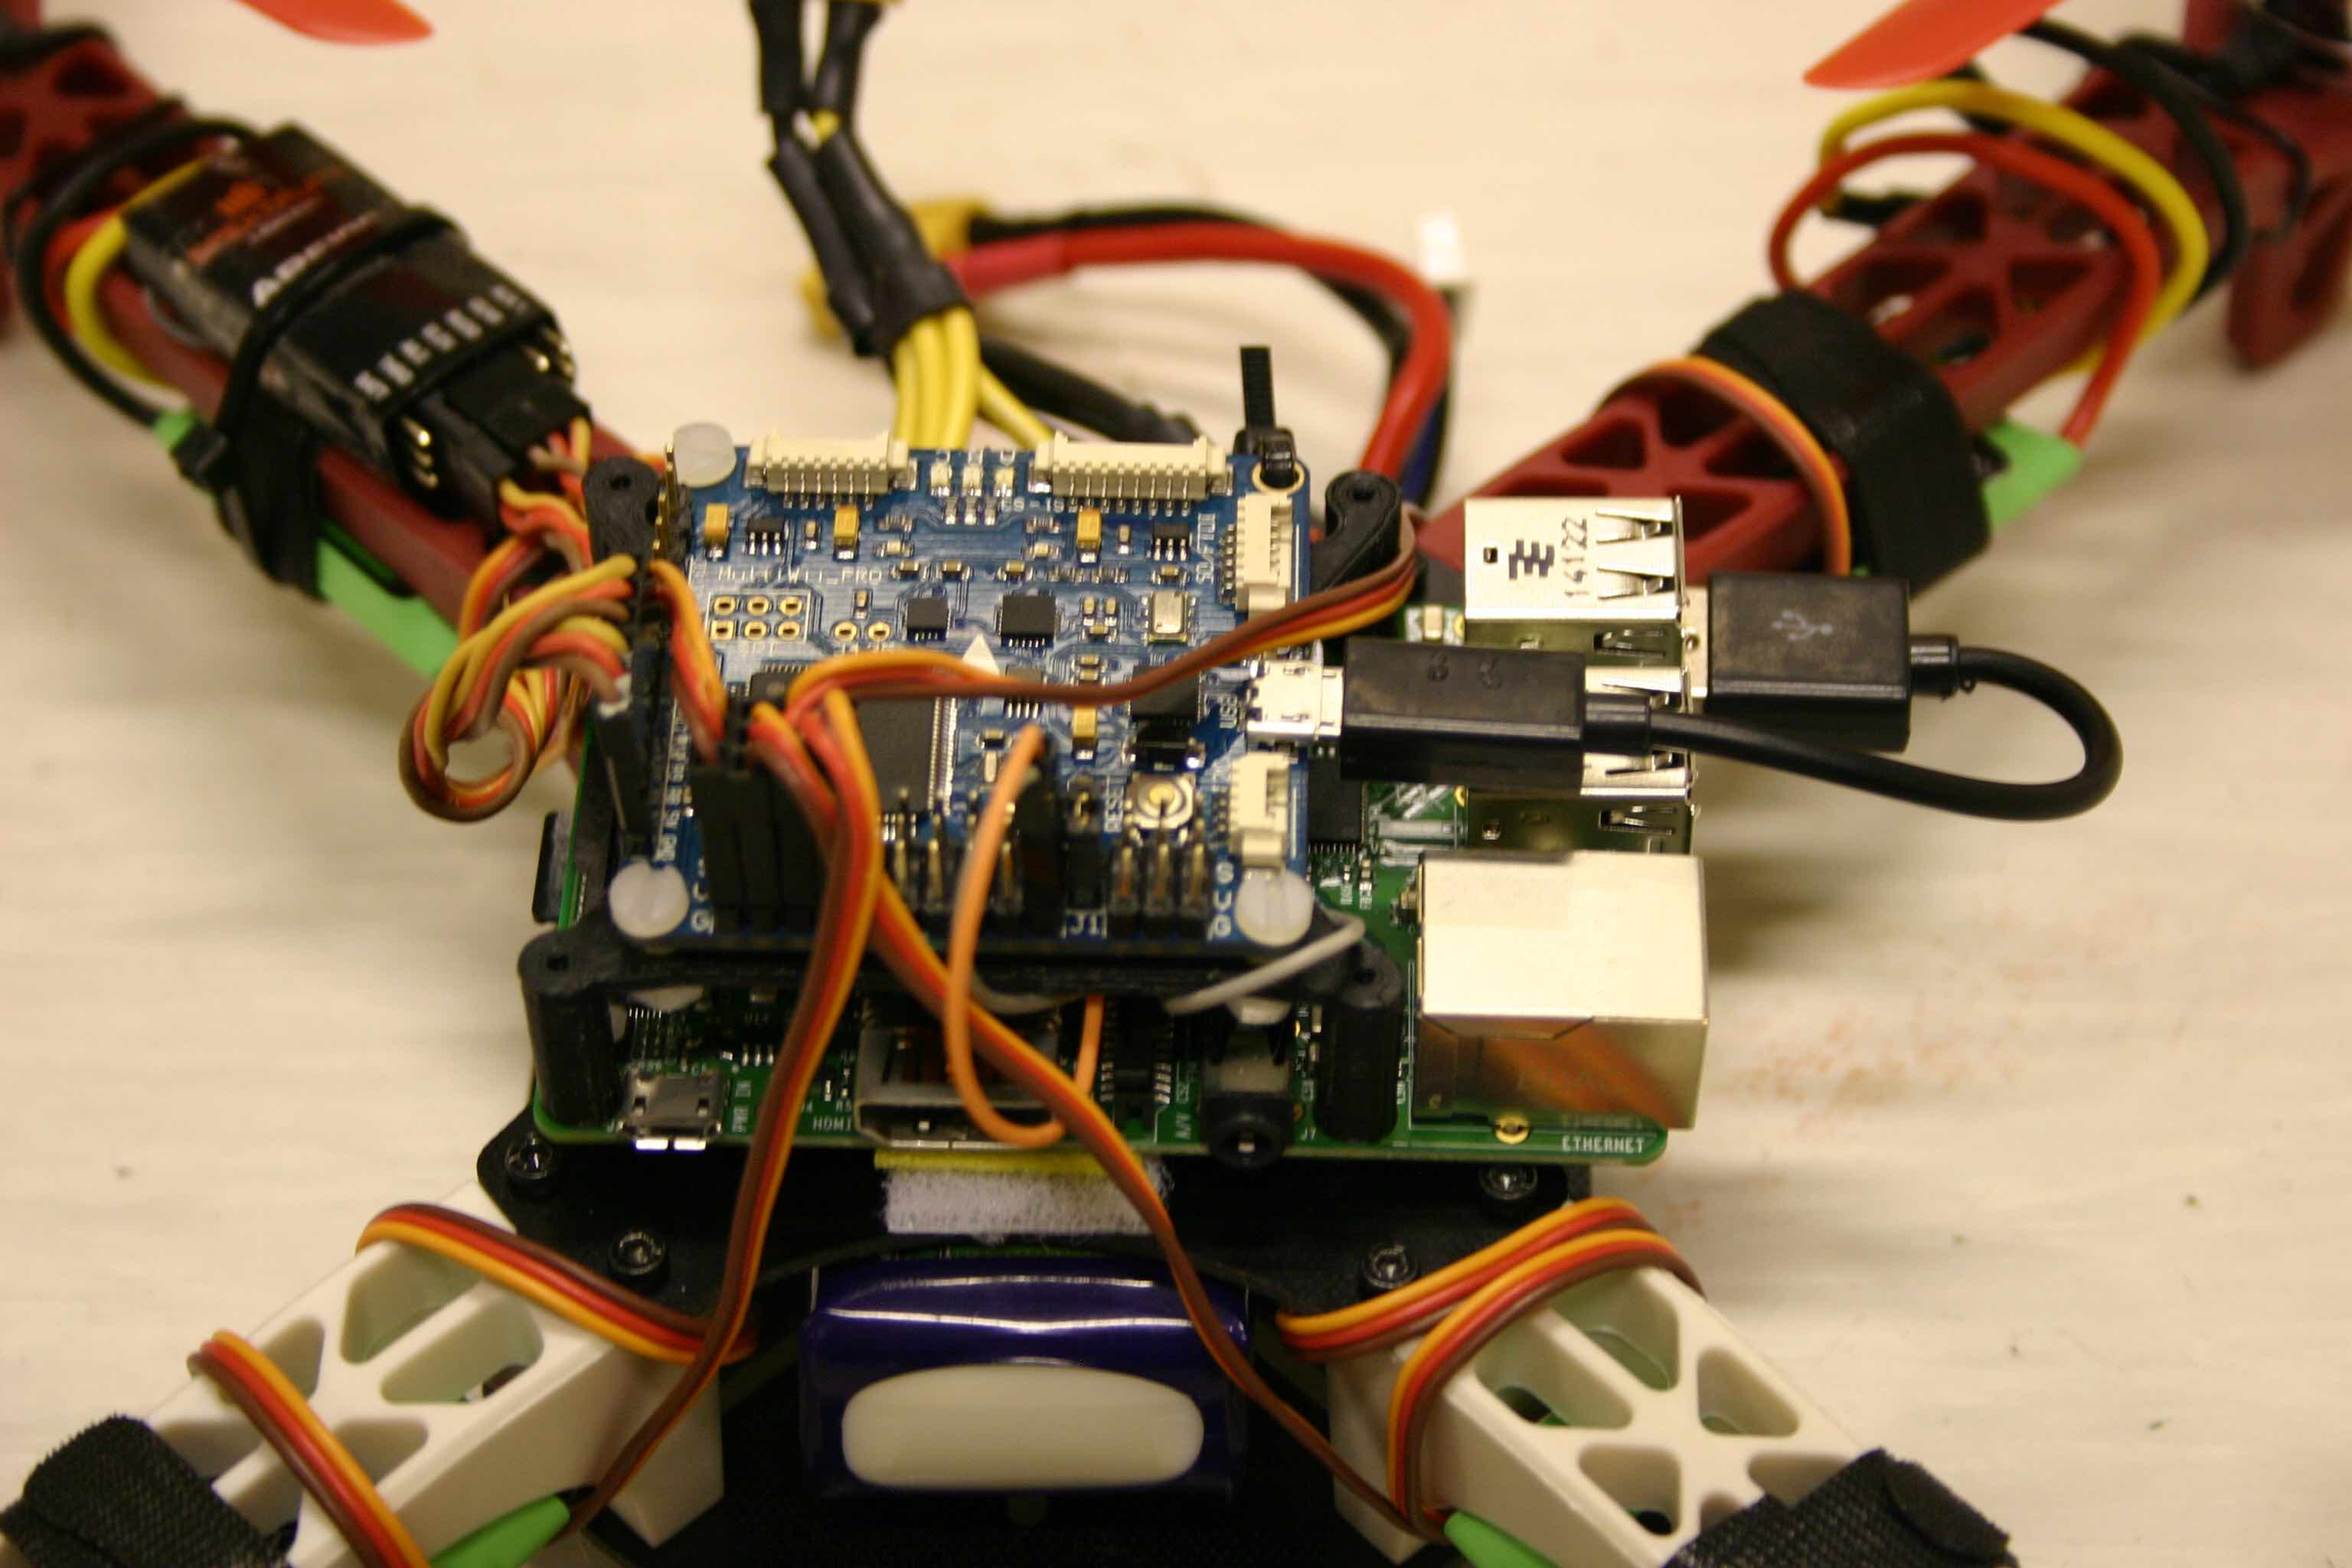 MultWii and Raspberry Pie on a quadcopter